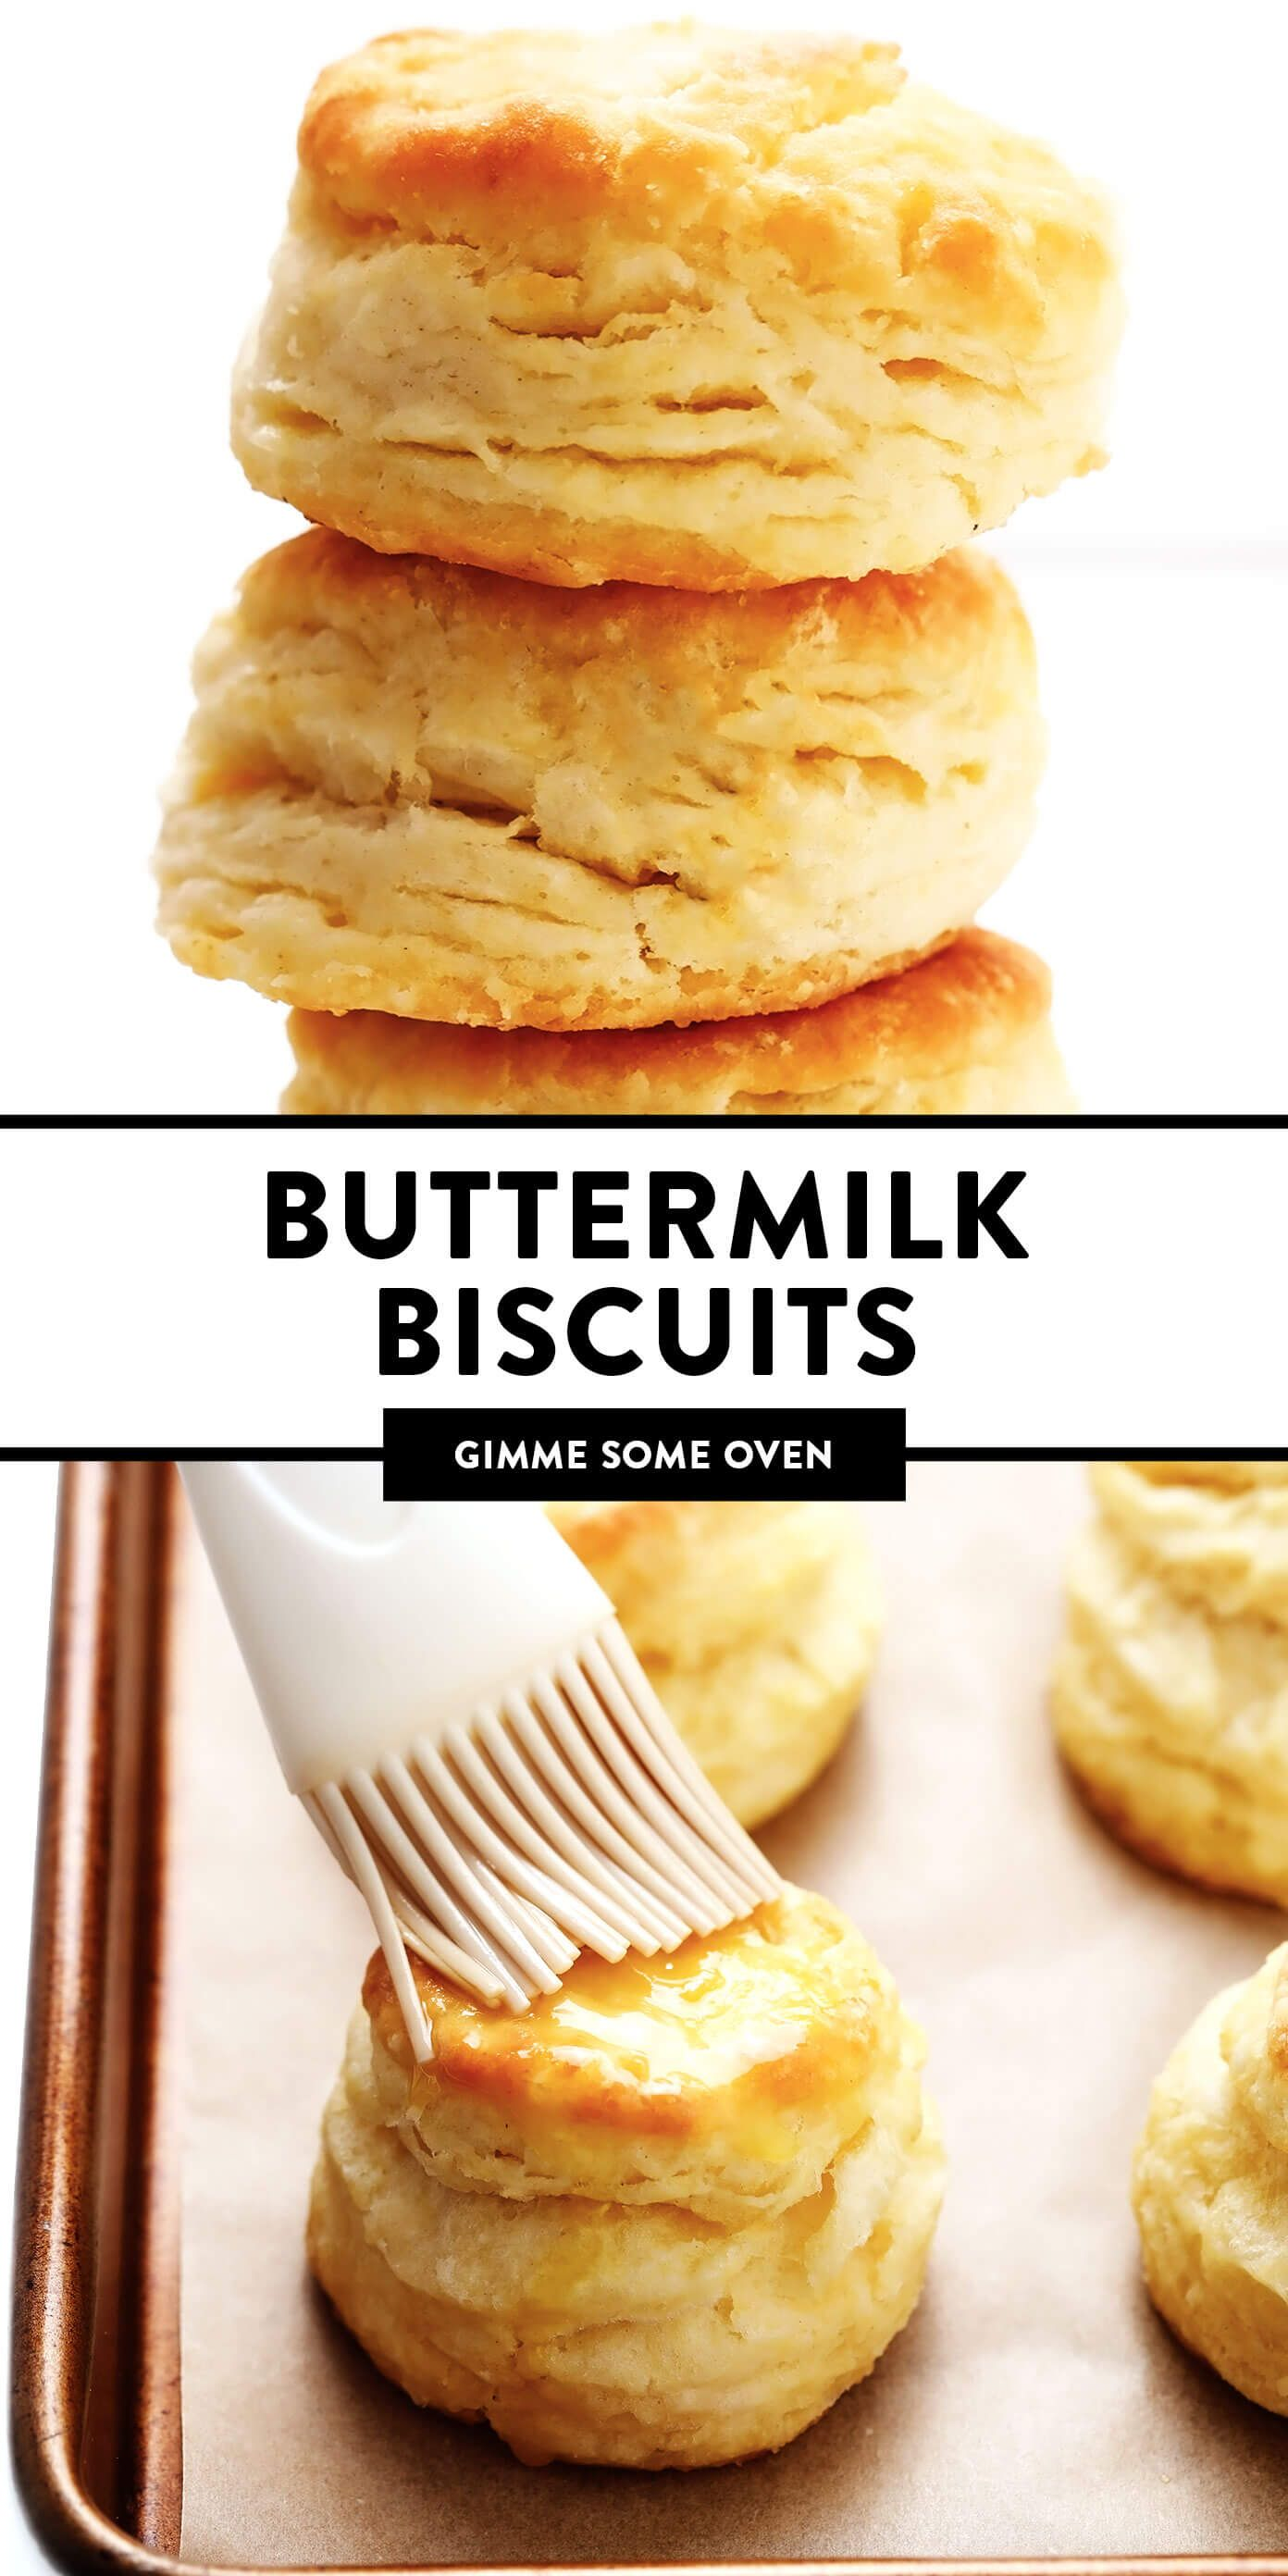 Homemade Buttermilk Biscuits Recipe Gimme Some Oven Recipe In 2020 Buttermilk Biscuits Homemade Buttermilk Biscuit Recipe